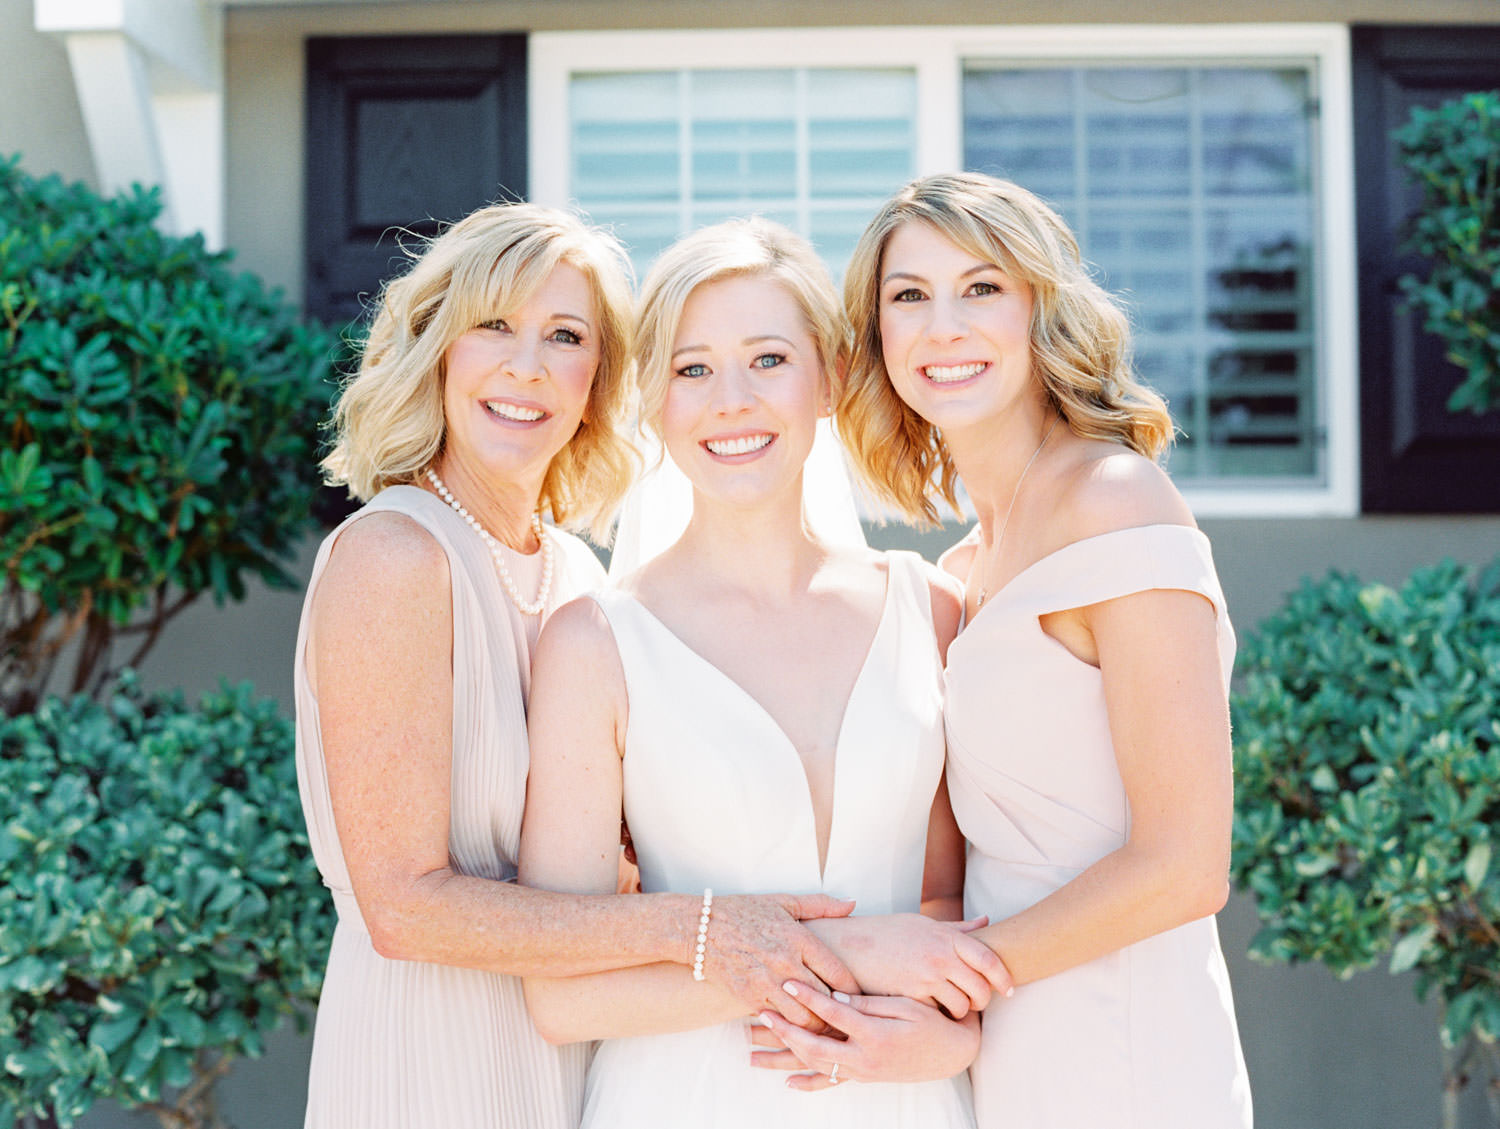 Bride in Stella York gown and veil for a classic bridal portrait with her mom and sister in blush gowns. San Diego wedding shot on film by Cavin Elizabeth Photography